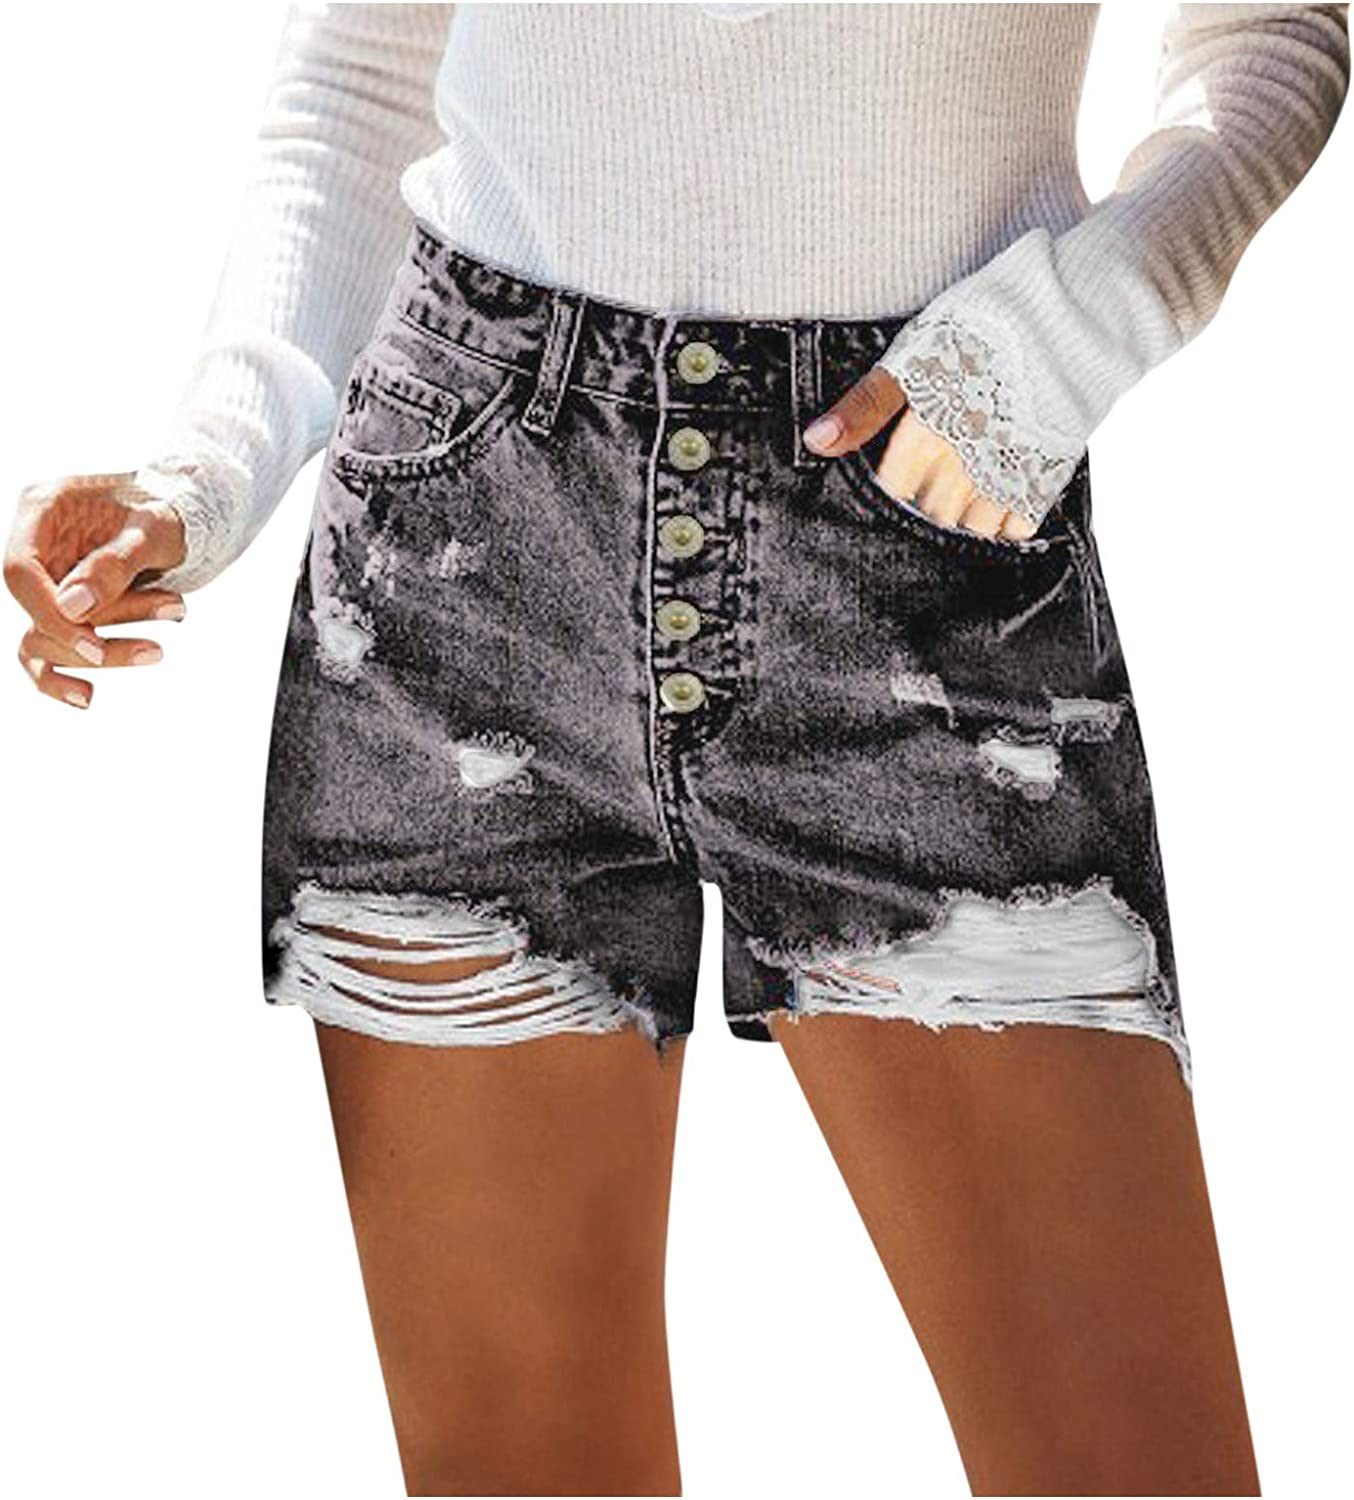 Denim Shorts for Women, Casual Solid Color Short Jeans for Women Button Fly High Waist with Hole